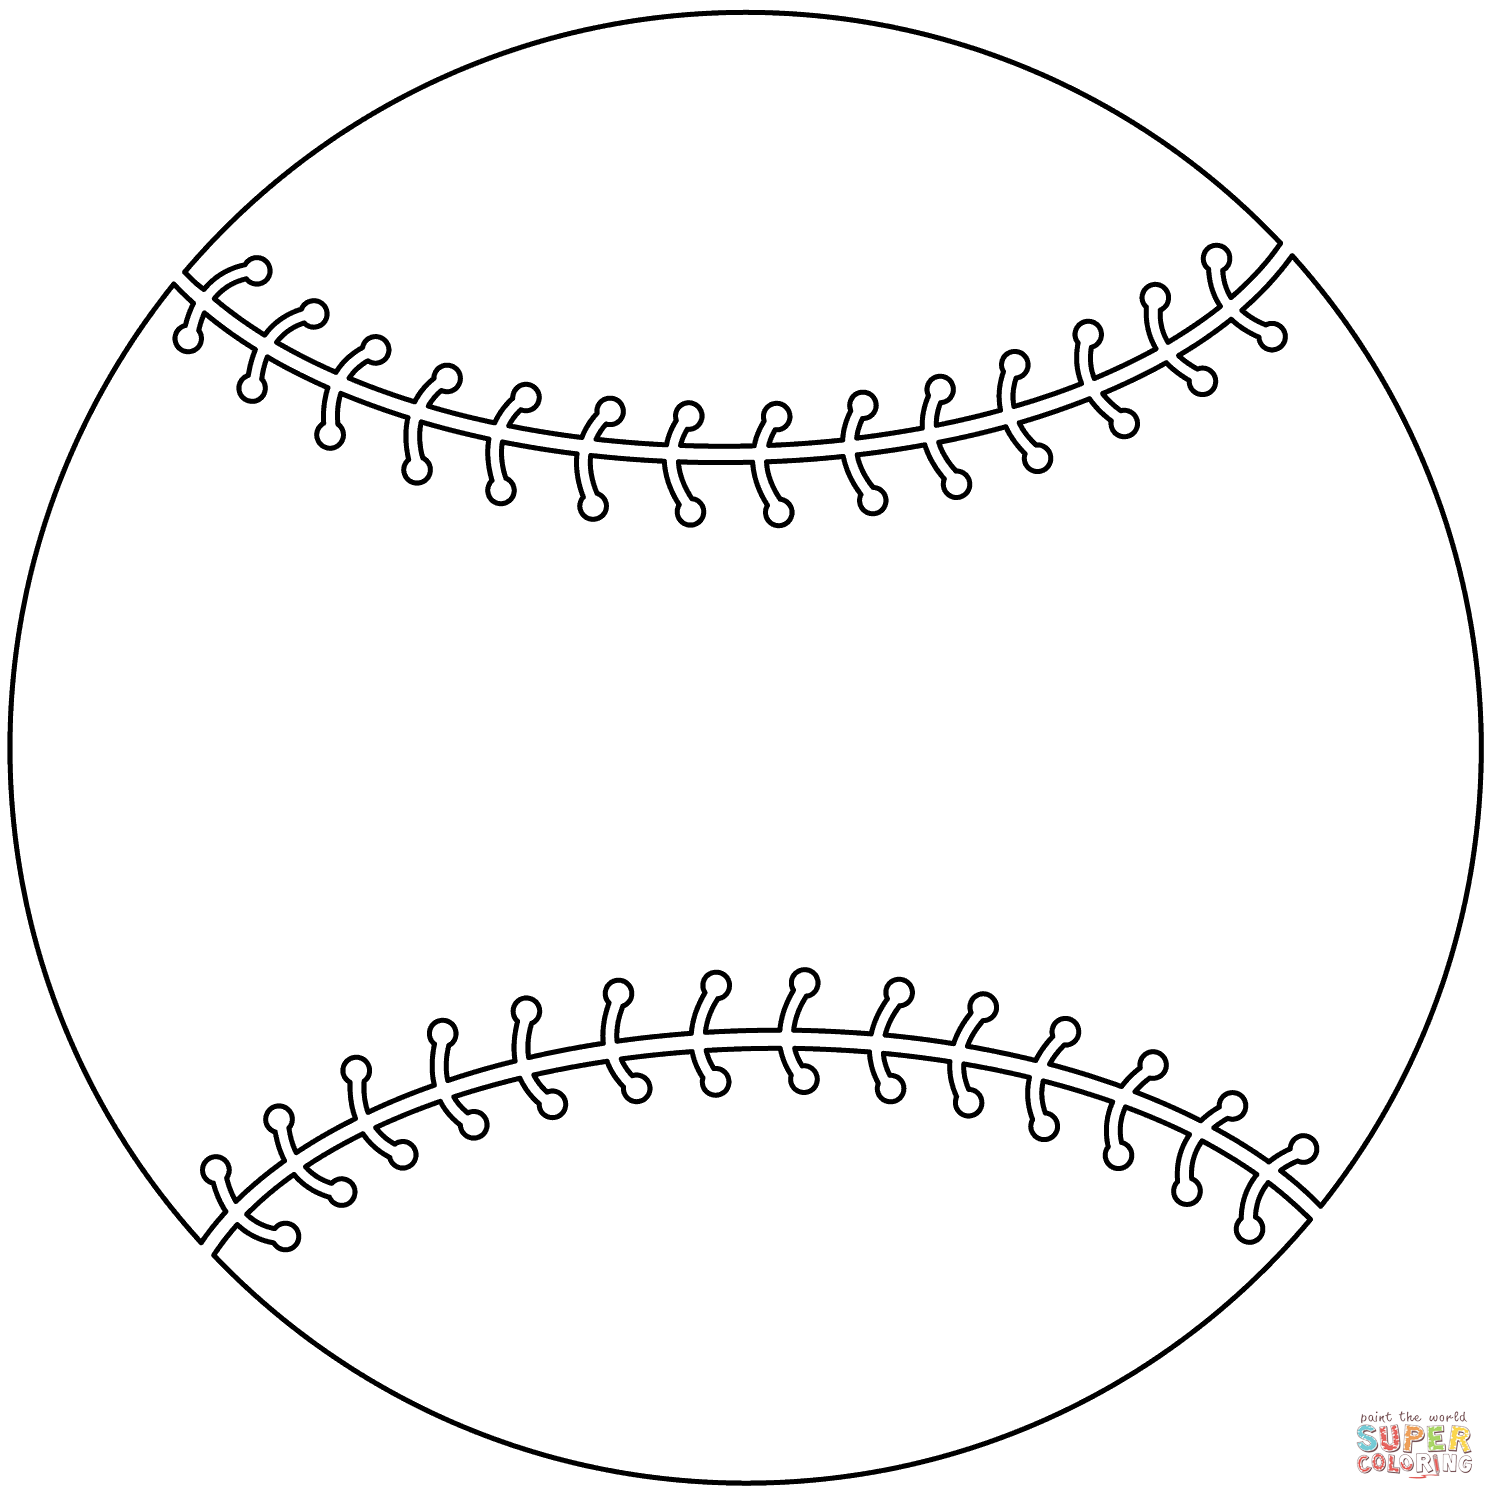 Unsurpassed Baseball Coloring Pages Excellent 24 Arsybarksy At 2